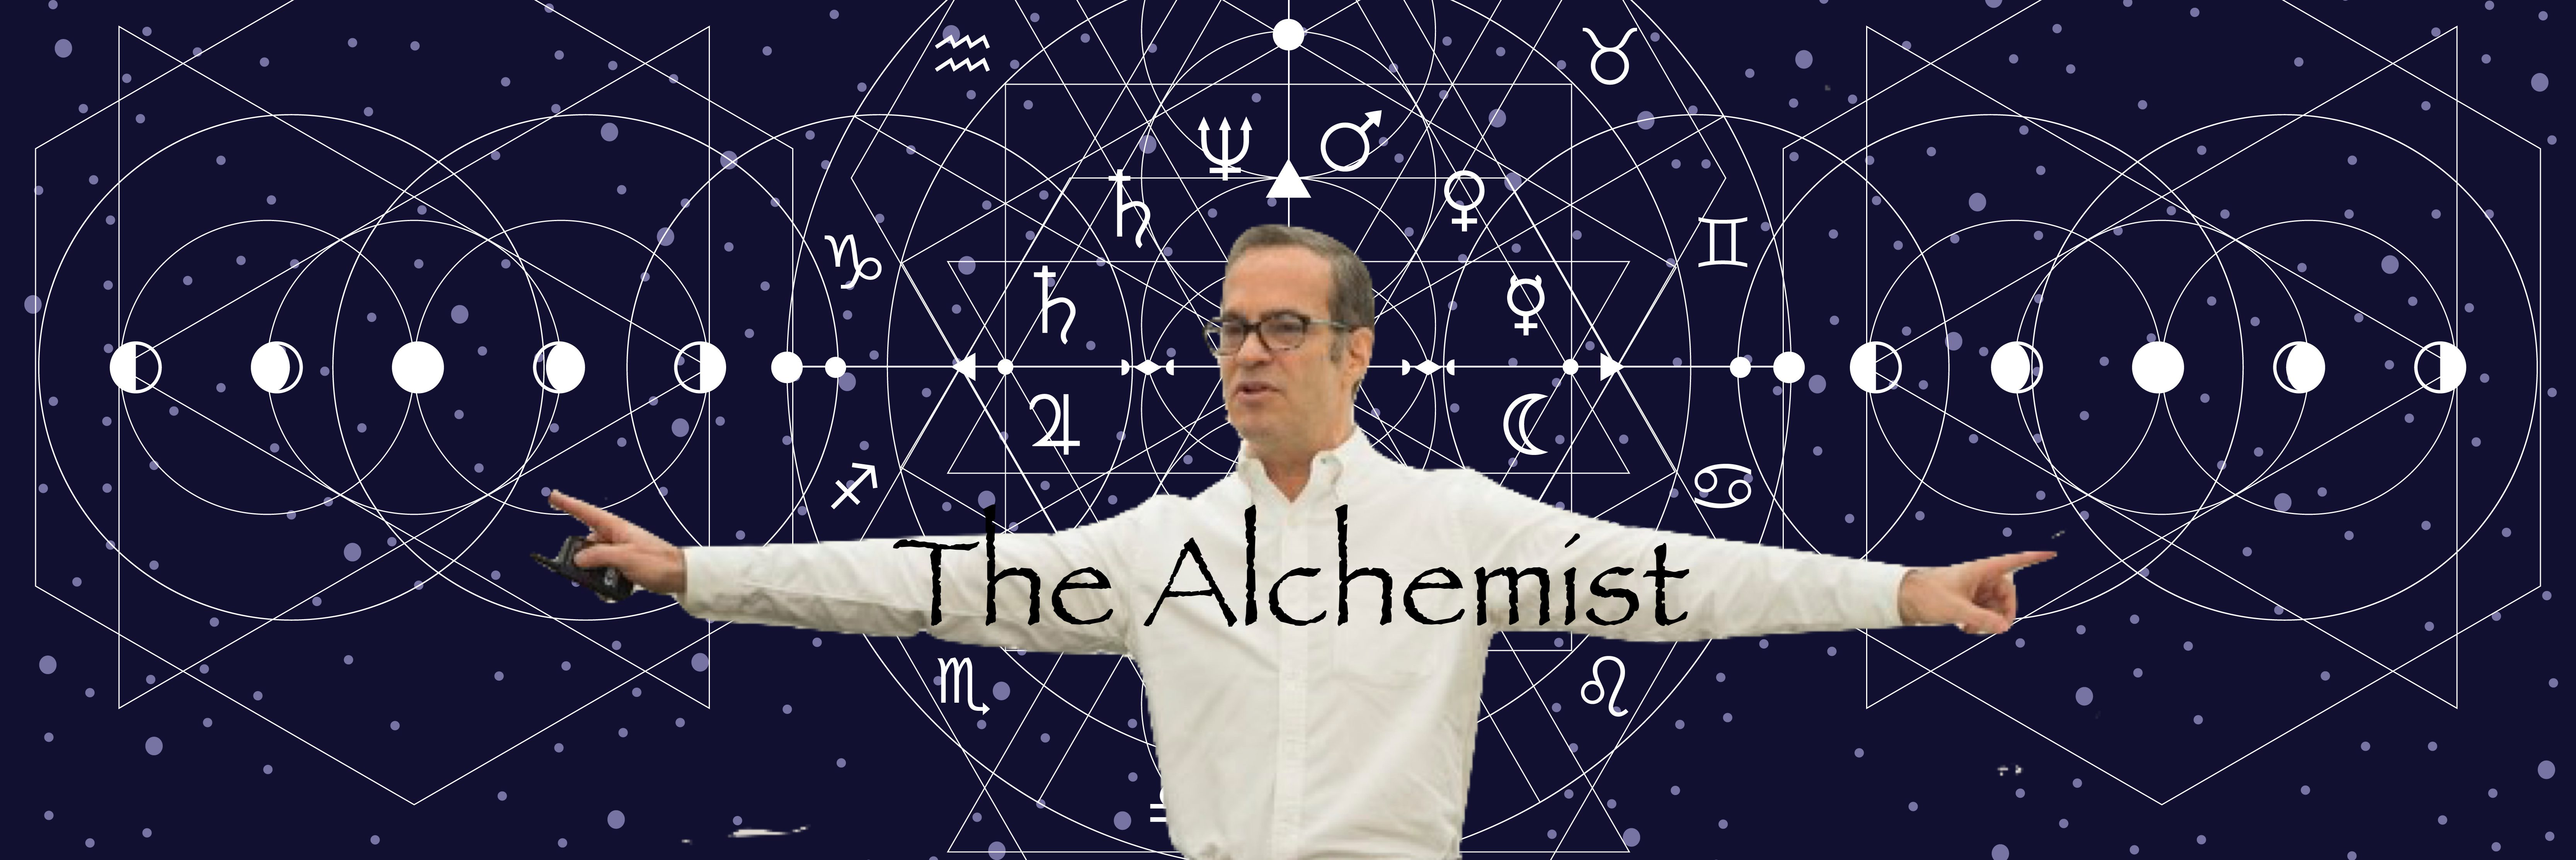 David J. Katz – The Alchemist